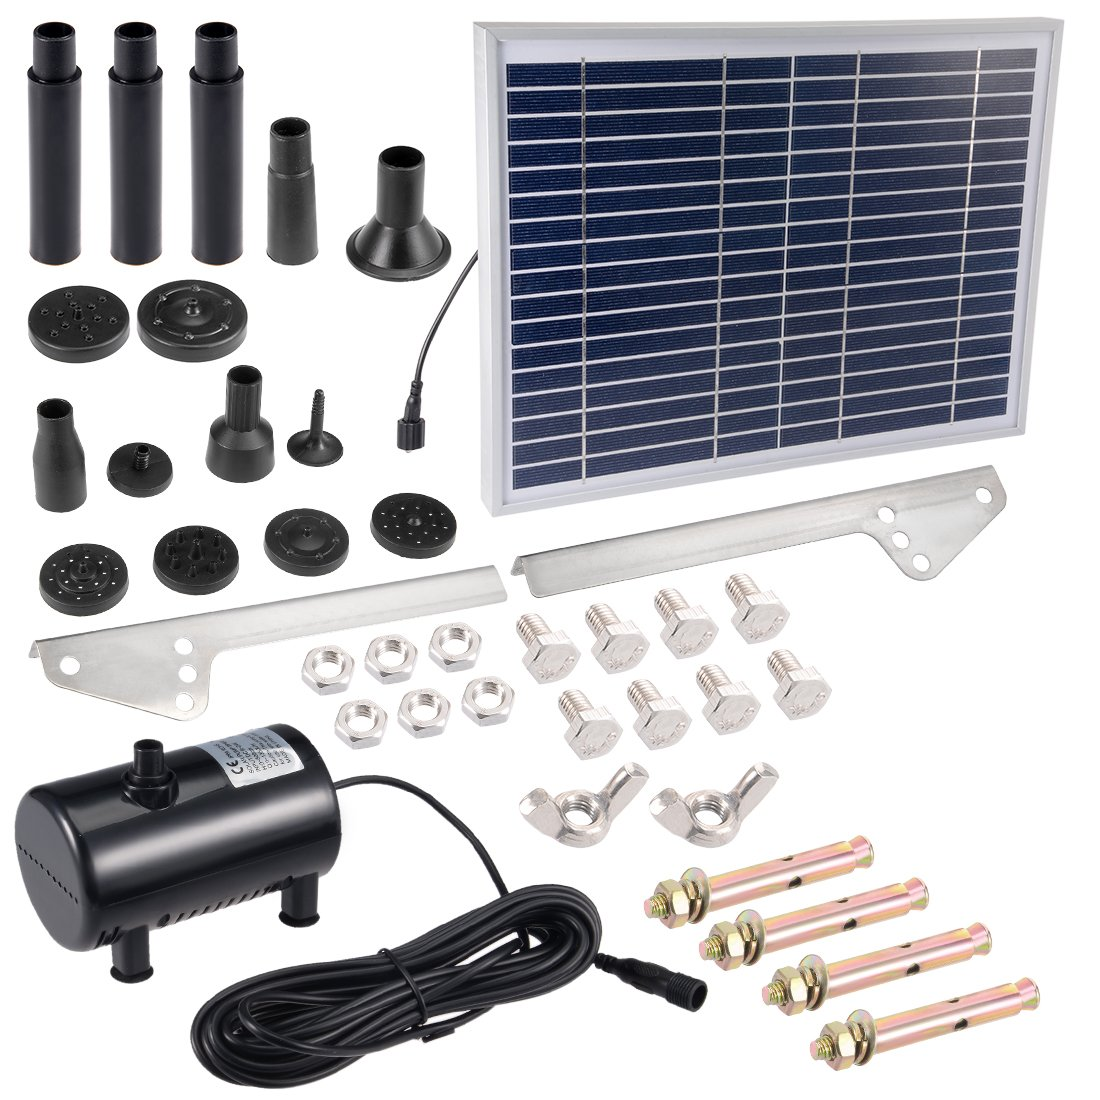 uxcell Solar Water Pump Kit 10W 3M/9.8ft Wire Length with 7 Sprinkler Heads,Submersible Solar Water Pump,Garden Fountain Pool Watering Pond Pump Pool Garden Patio Bird Bath with Separate Solar Panel